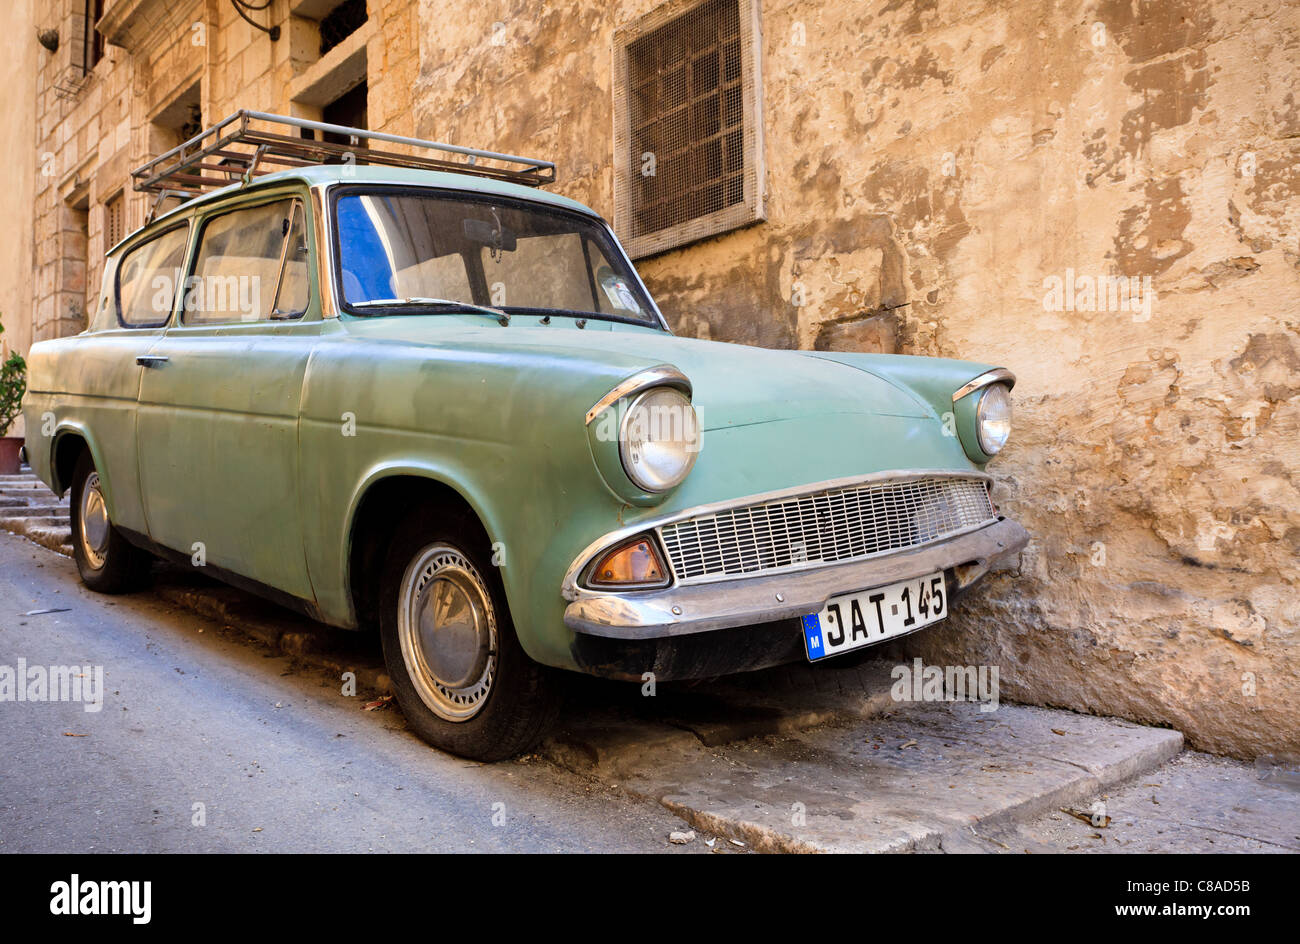 Classic Ford Anglia parked in a narrow street in Valletta, Malta - Stock Image